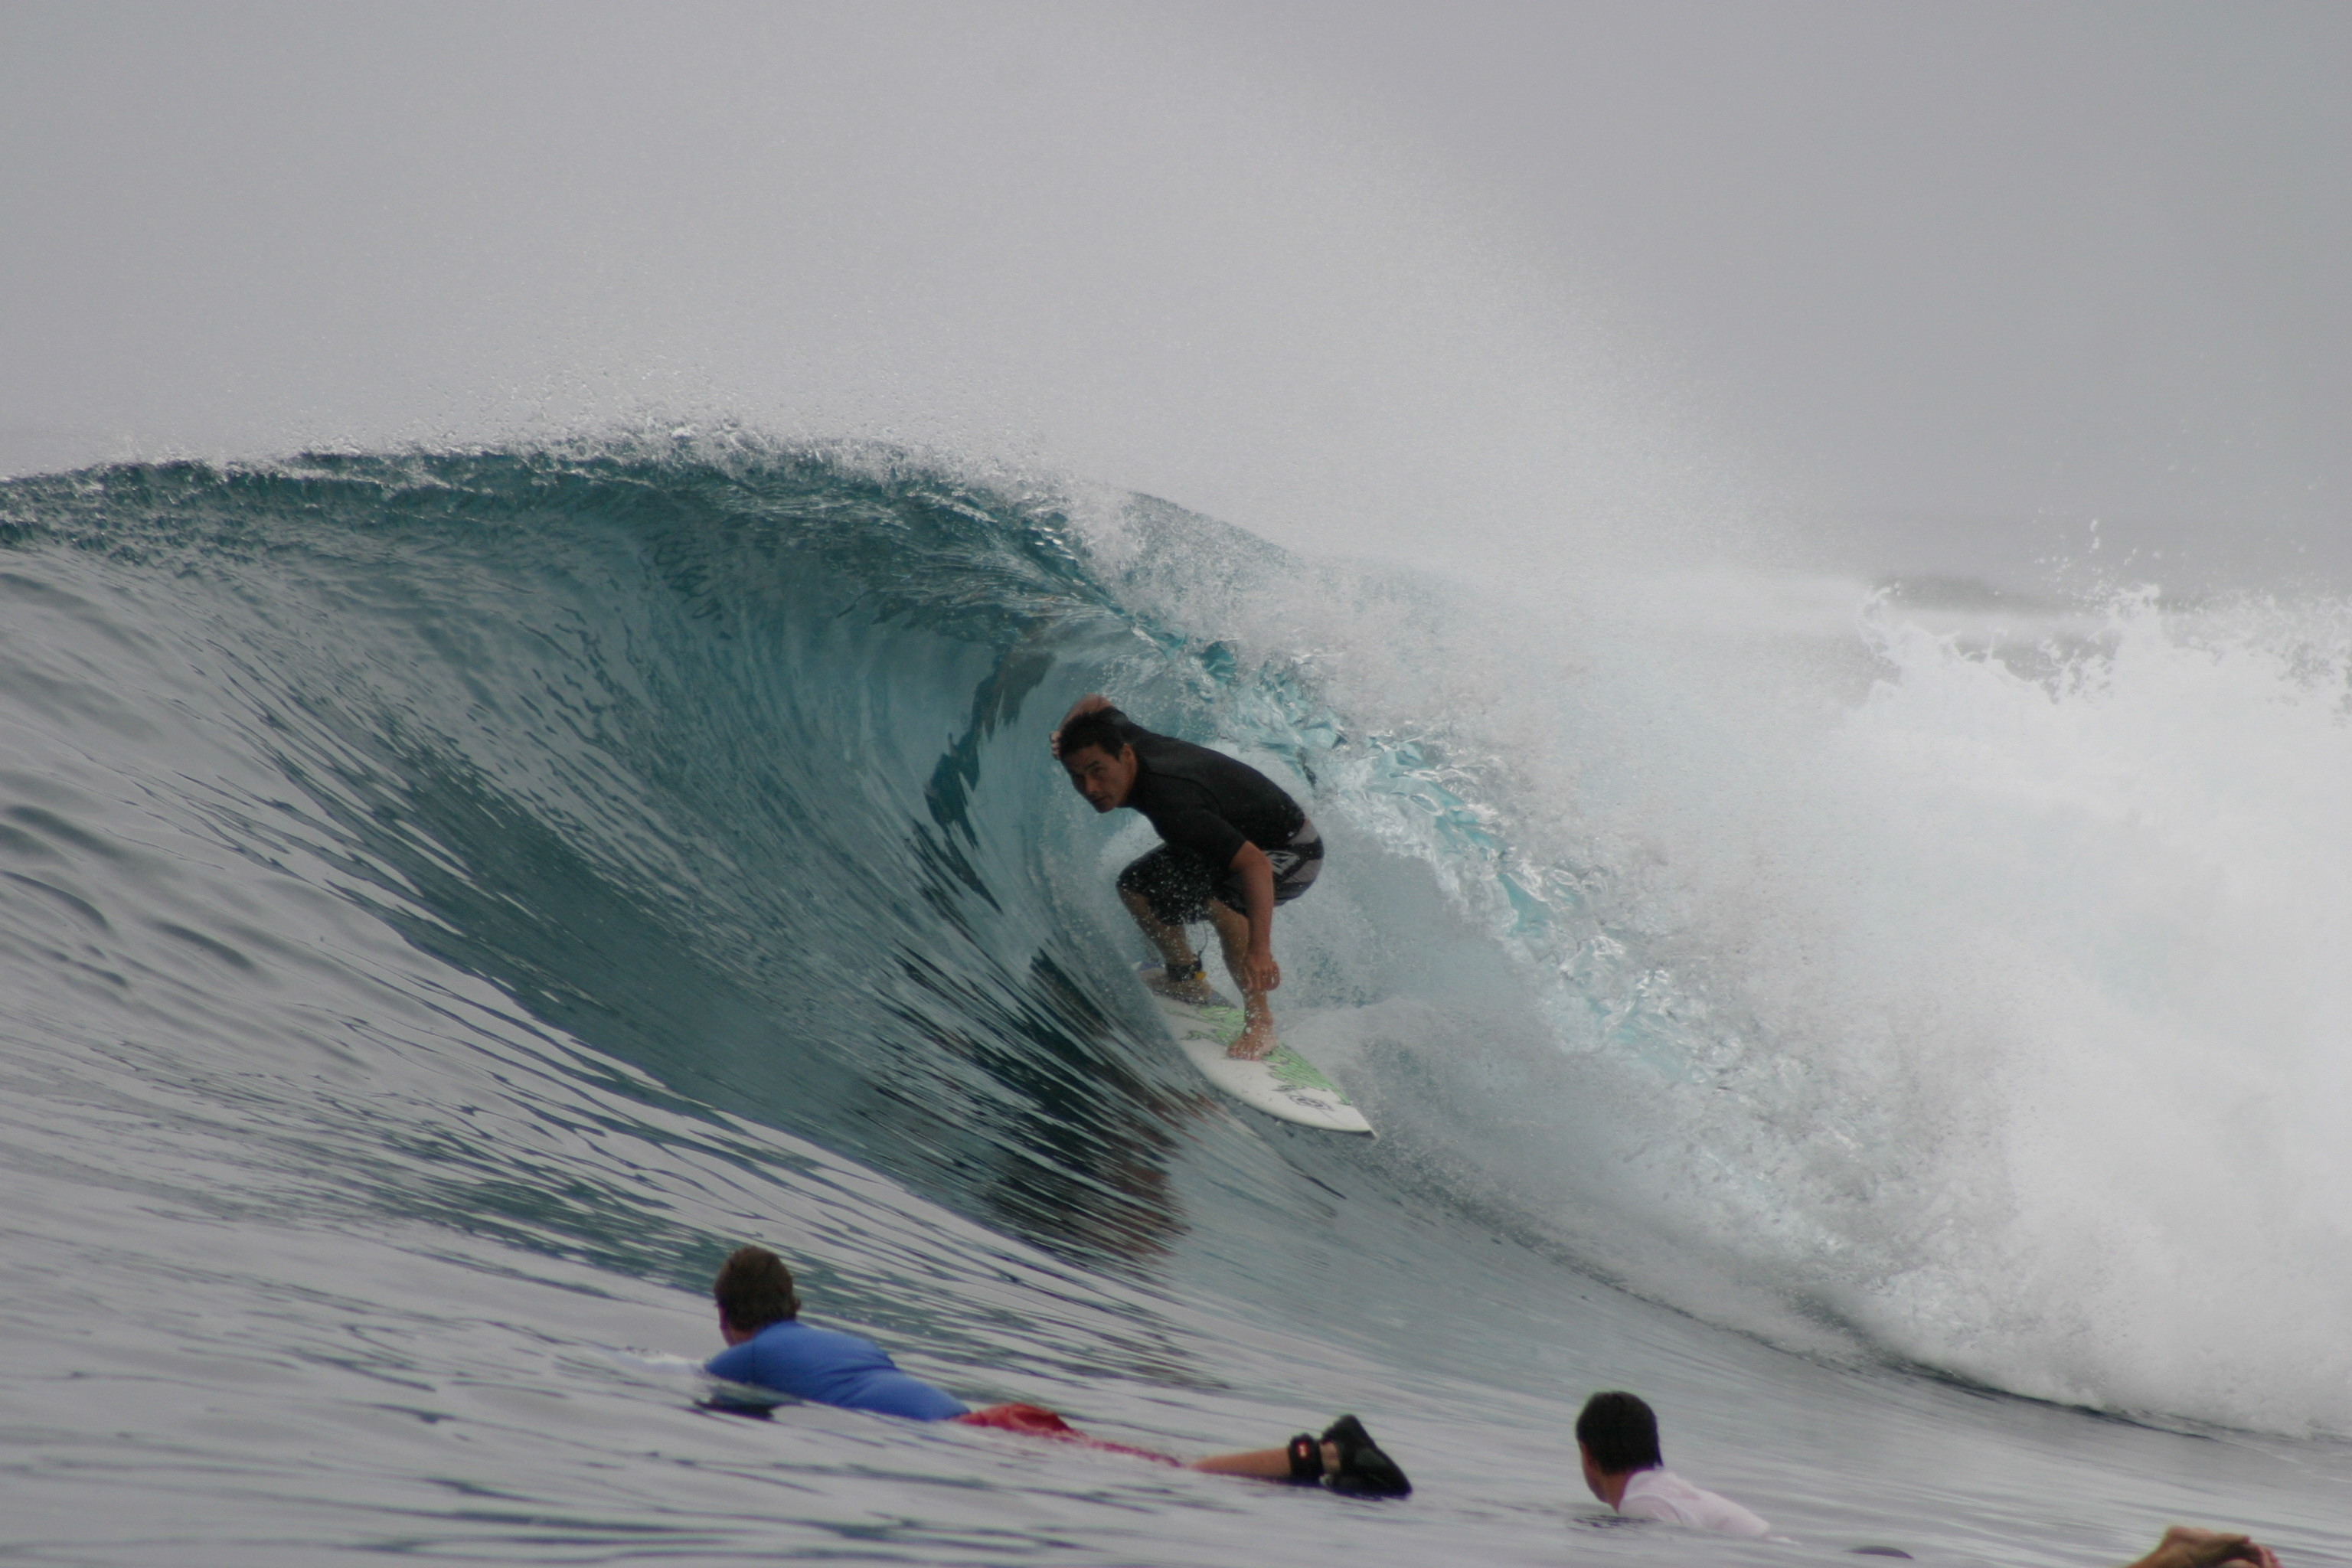 George surfing Indonesia. Photo courtesy of G. Gall.